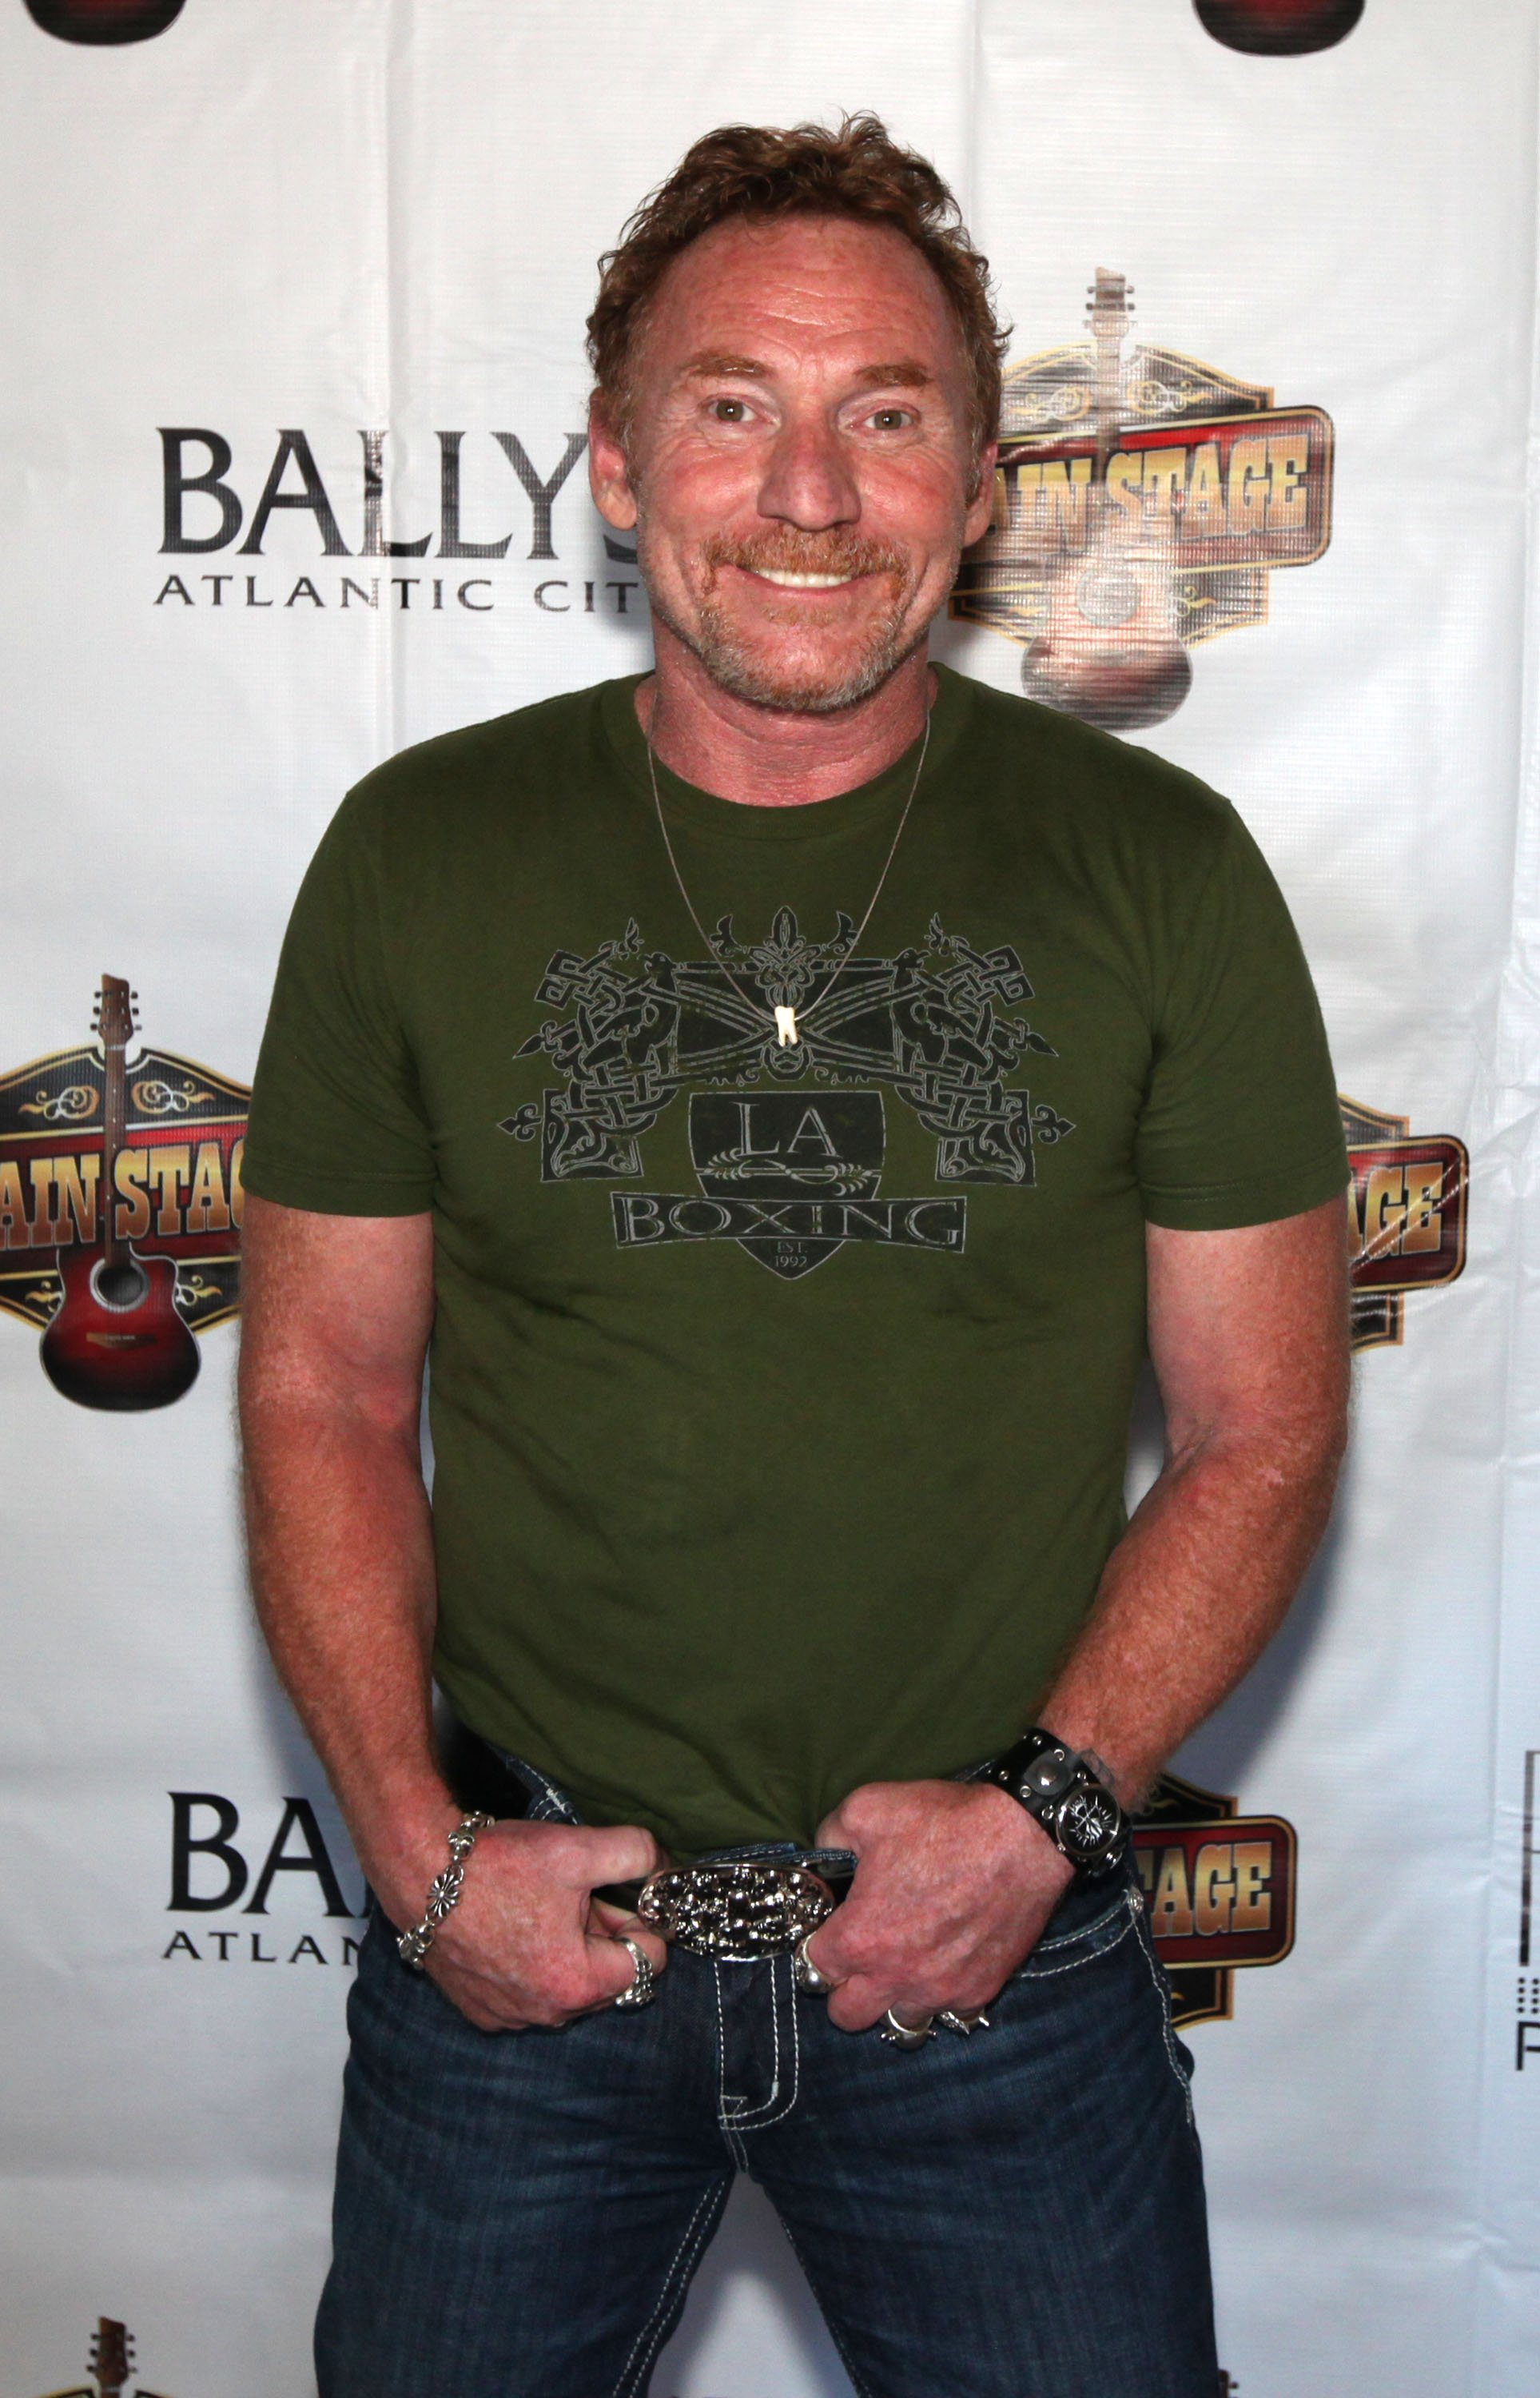 Danny Bonaduce attend the Battle of the Room Trashing Bands at Bally's Atlantic City on June 25, 2010 in Atlantic City | Photo: Getty Images